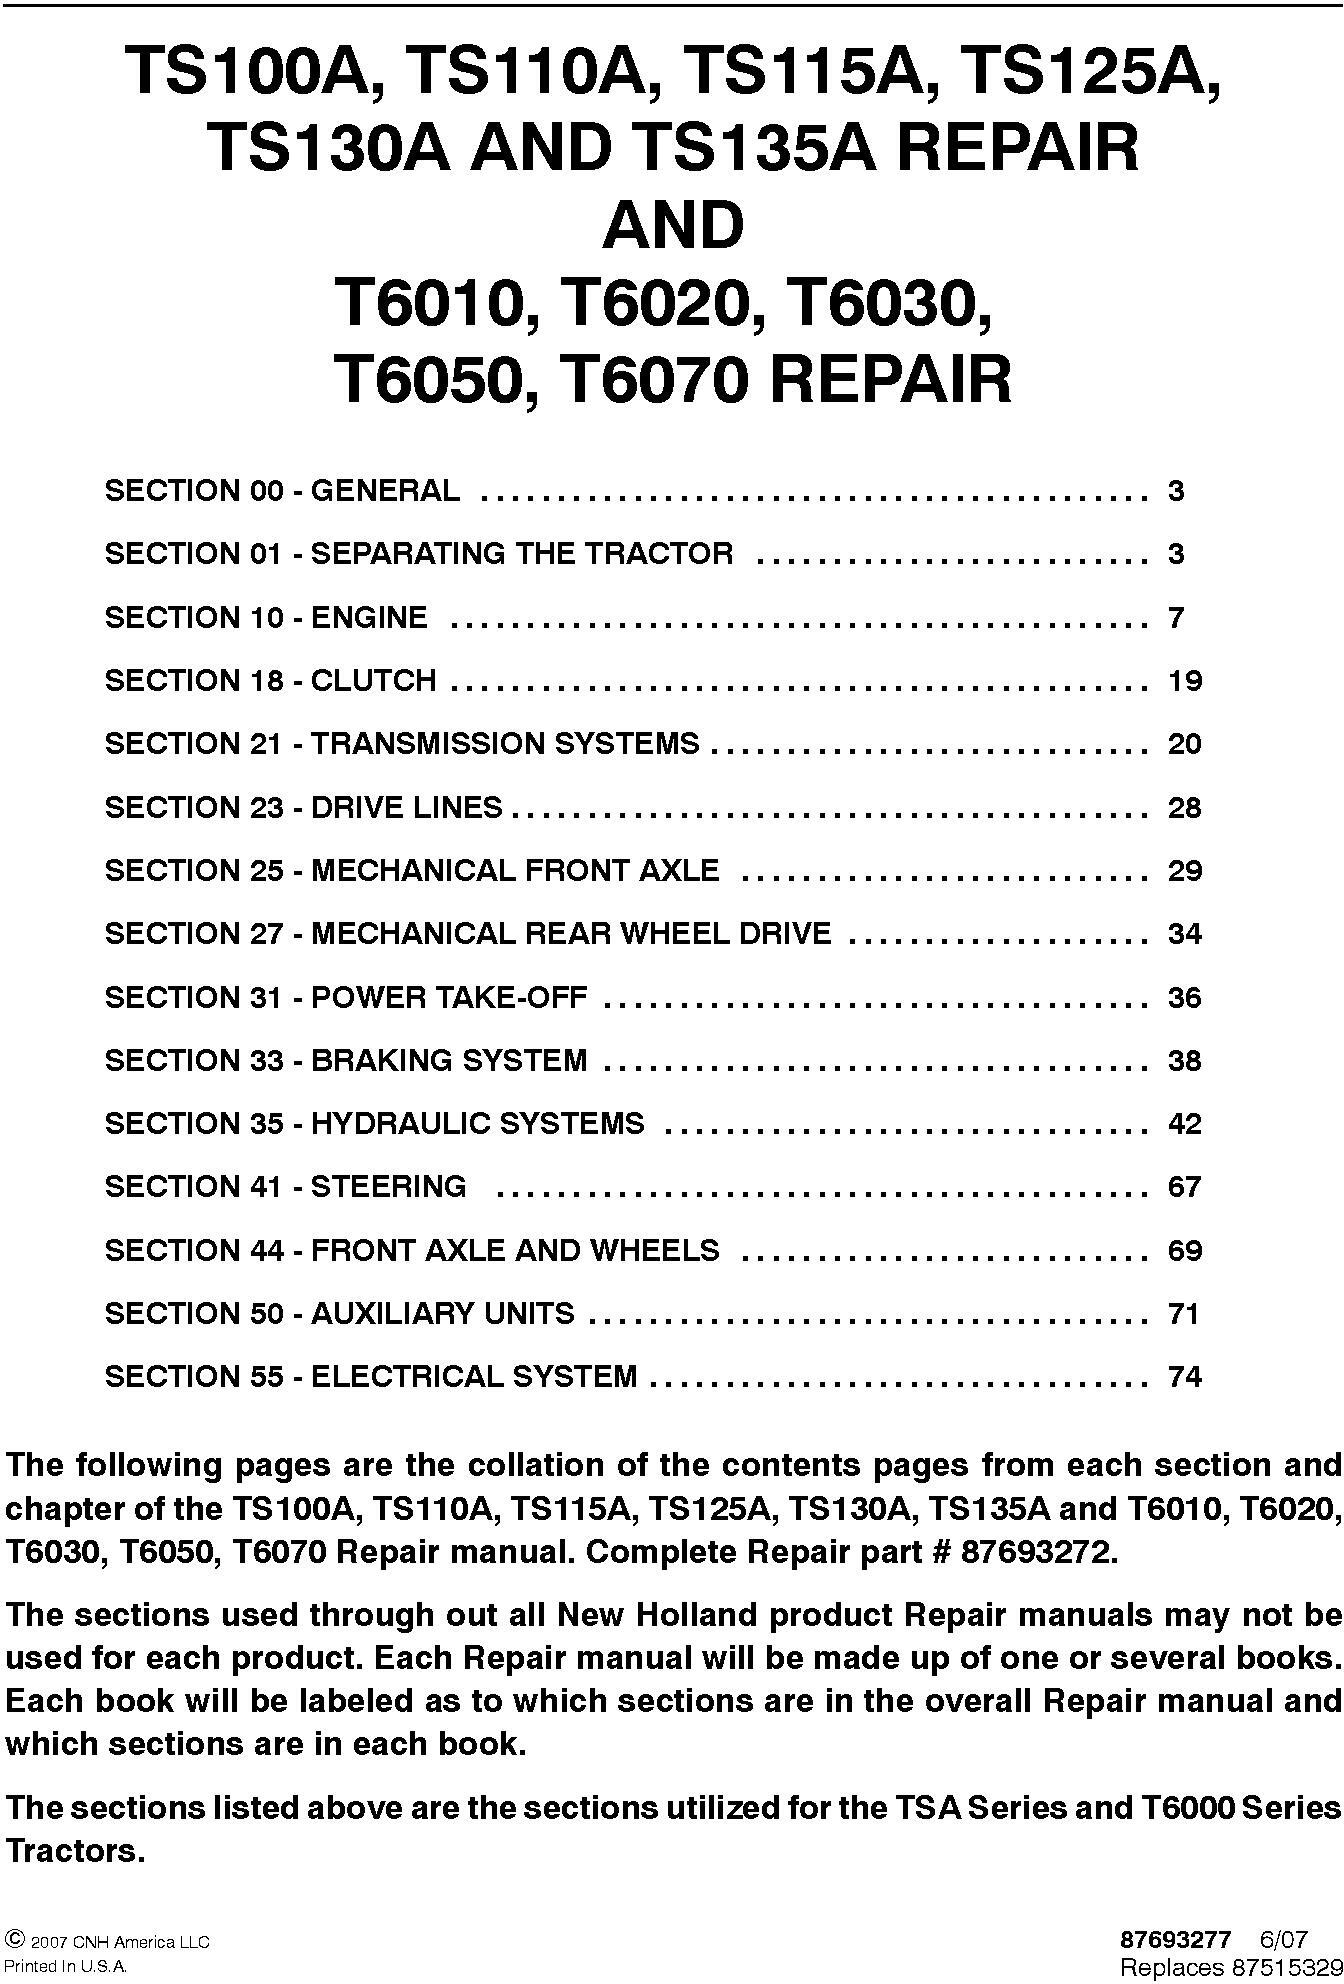 New Holland TS100A, TS110A, TS115A, TS125A, TS130A, TS135A, T6010, T6020, T6030,T6050 Service Manual - 19631